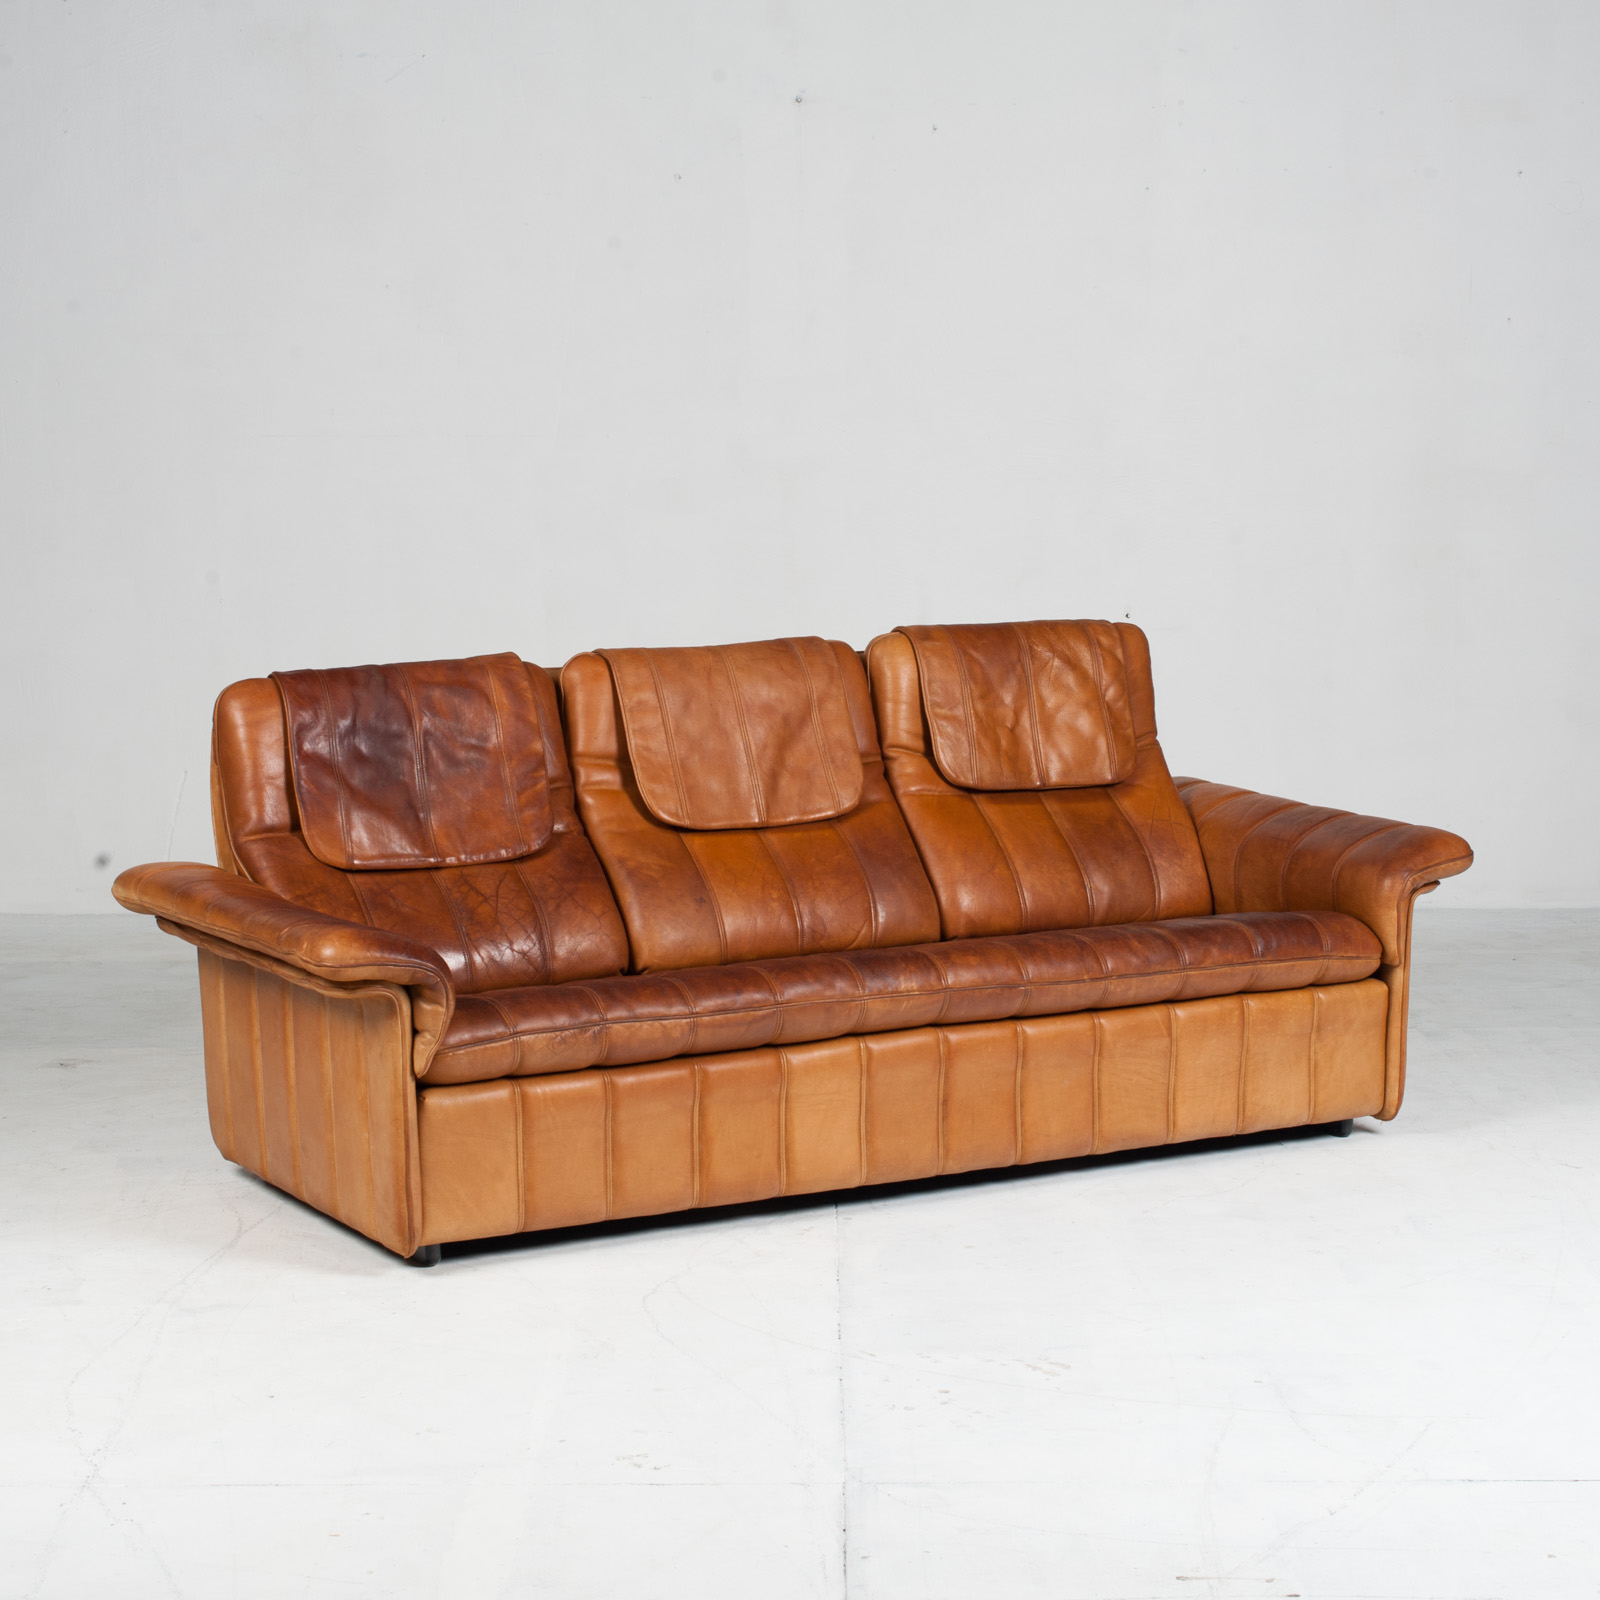 3 Seat Sofa By De Sede In Tan Leather 1970s Switzerland 02